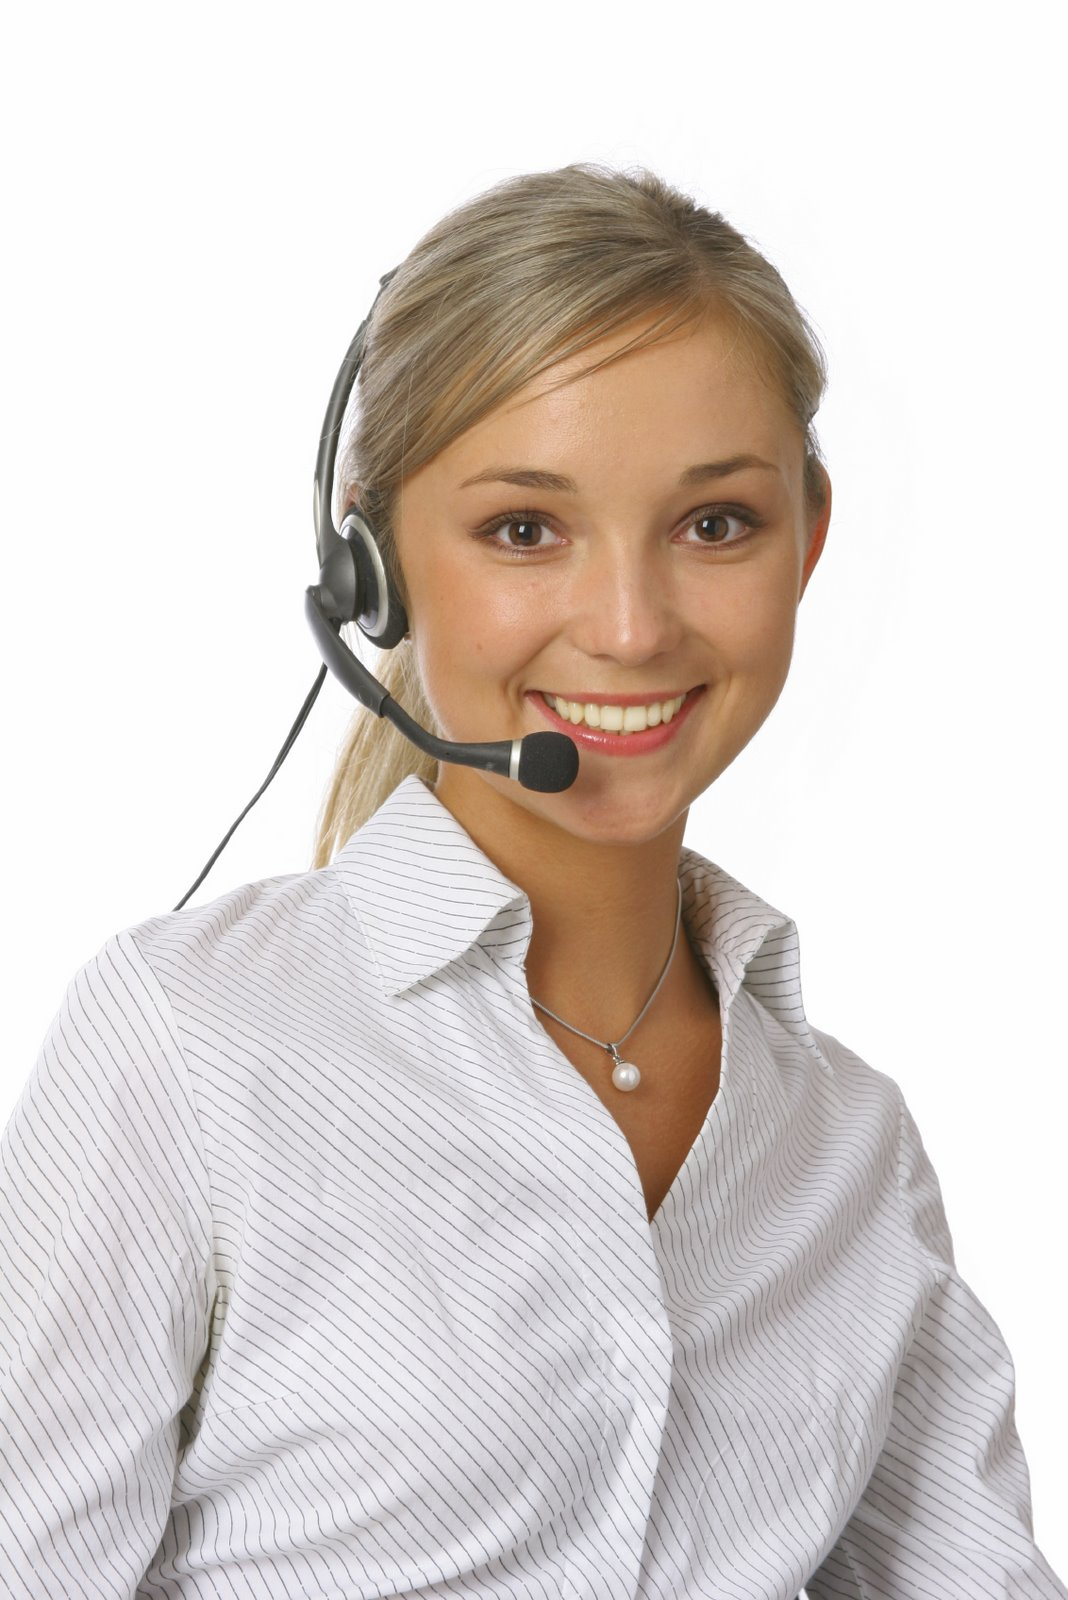 Your Beautiful Receptionist Half Your Age Fails In Her